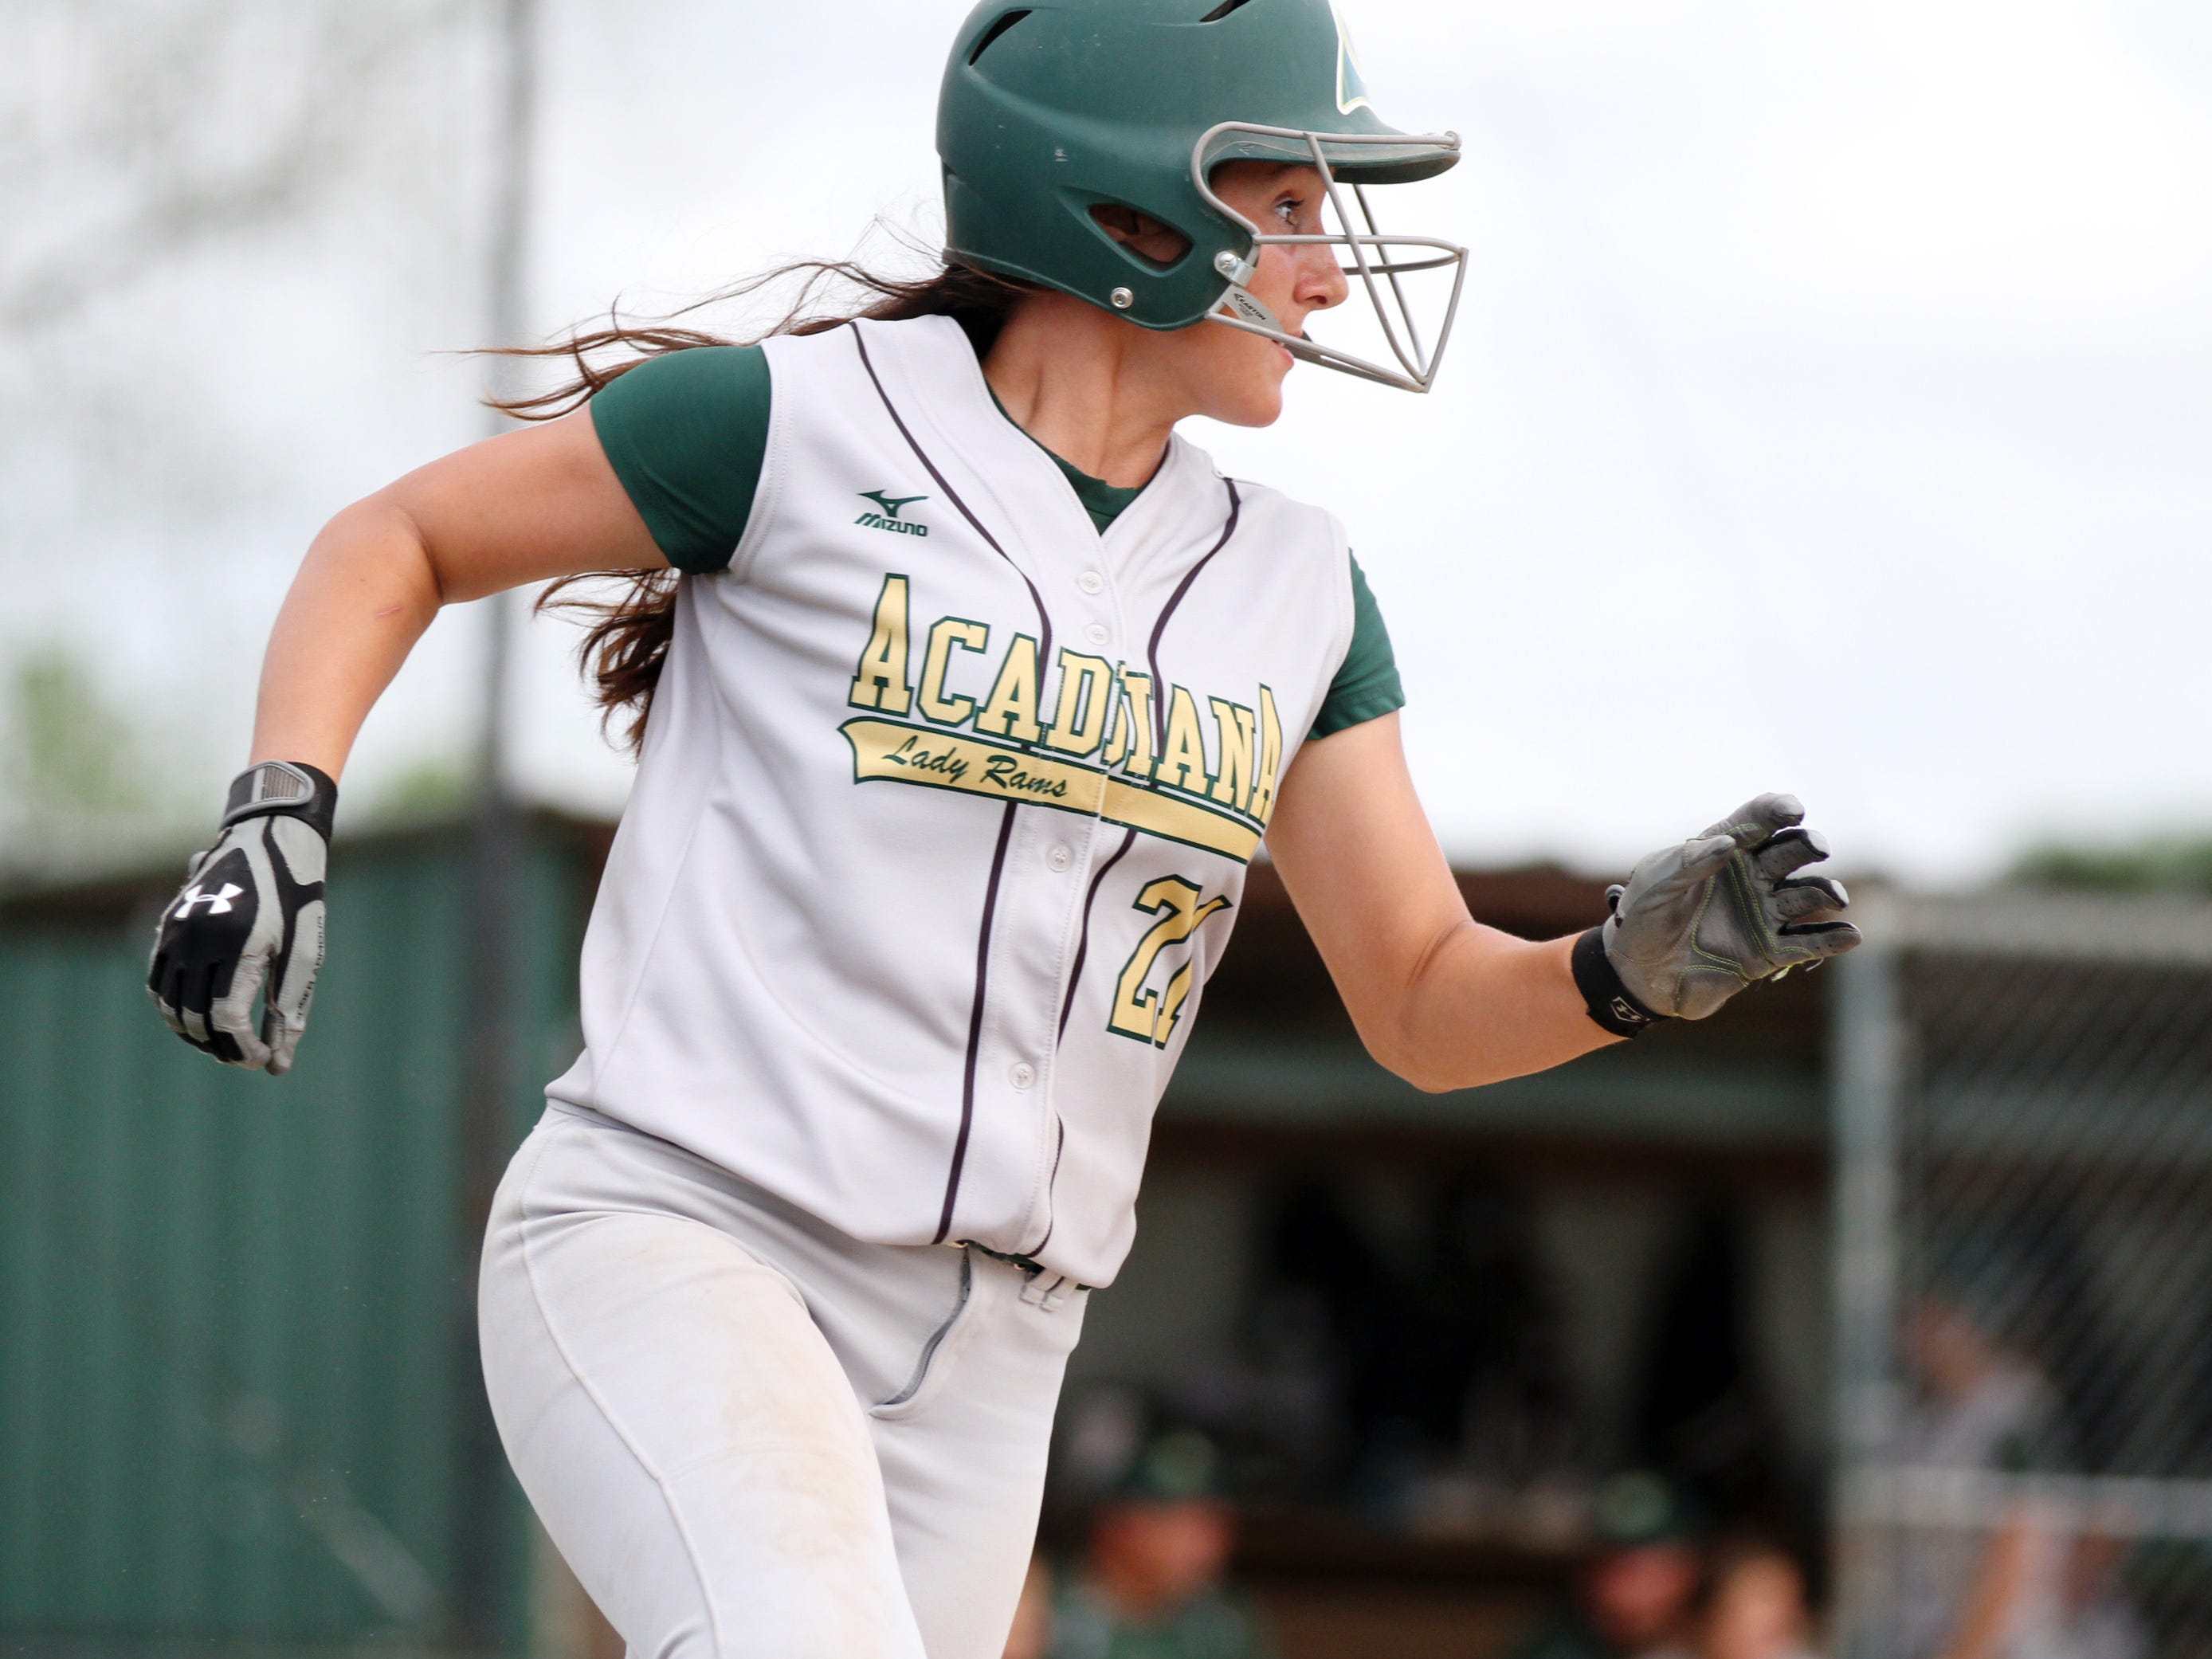 Acadiana High's Kennedi Smith and the Lady Rams ended a 20-year playoff drought Thursday by earning a No. 27 seed in the Class 5A playoff bracket.